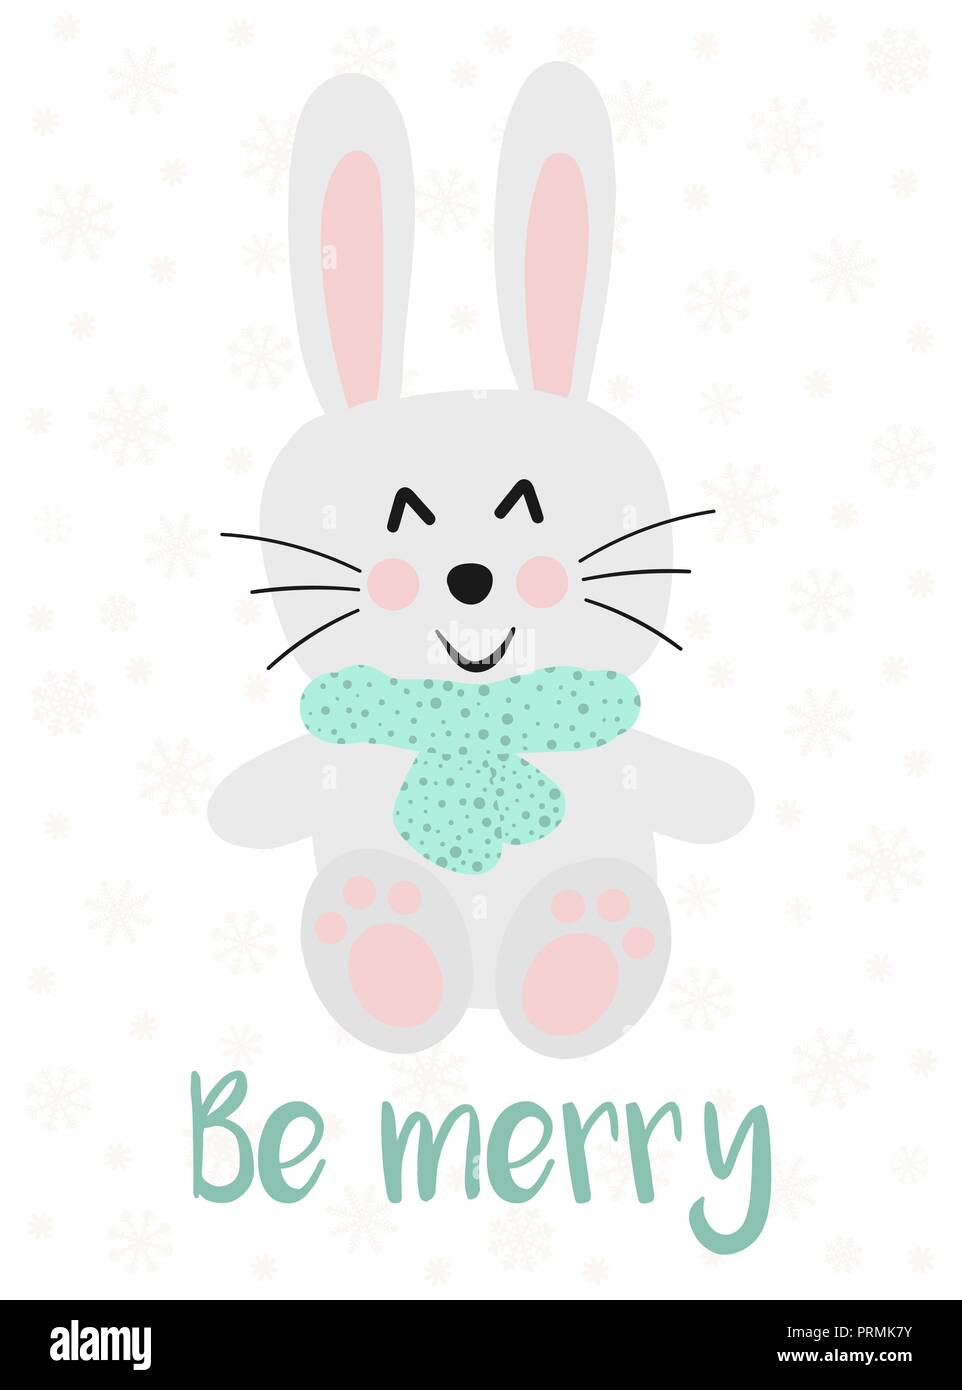 vector illustration for new year and christmas hand drawn image of a cartoon cute bunny in a scarf on a background of snowflakes with an inscription